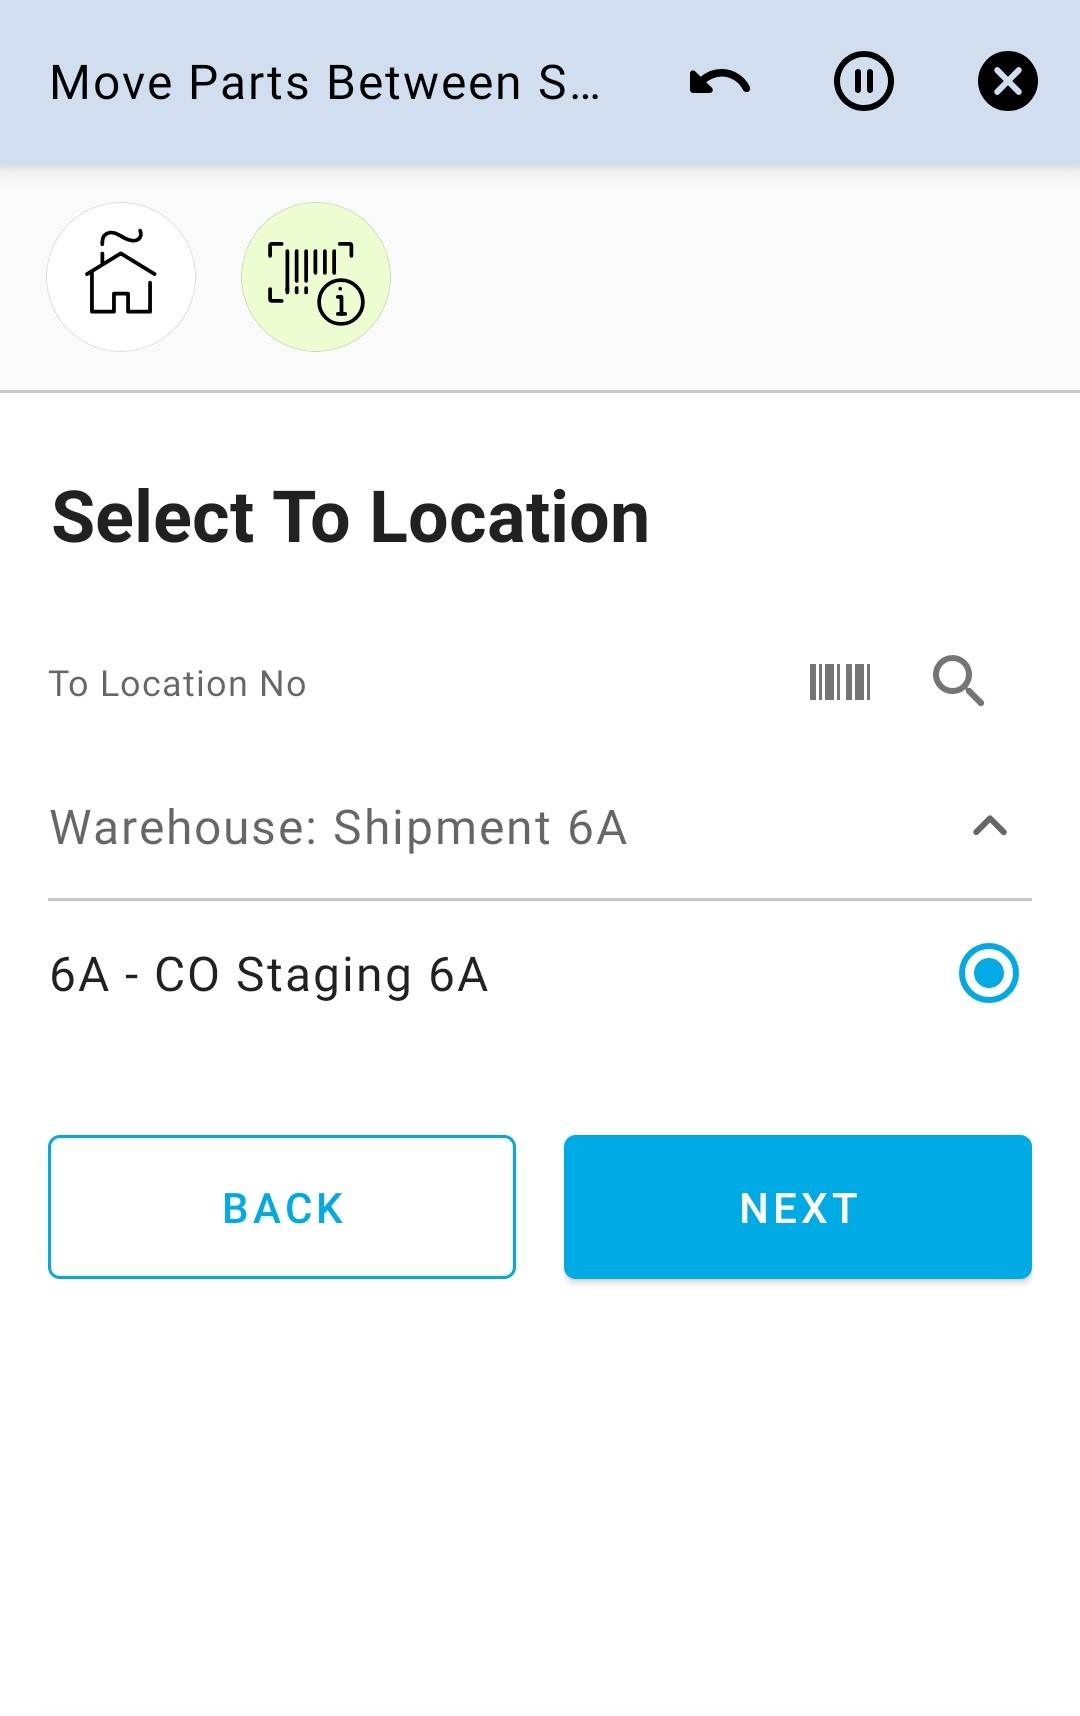 Select To Location 1